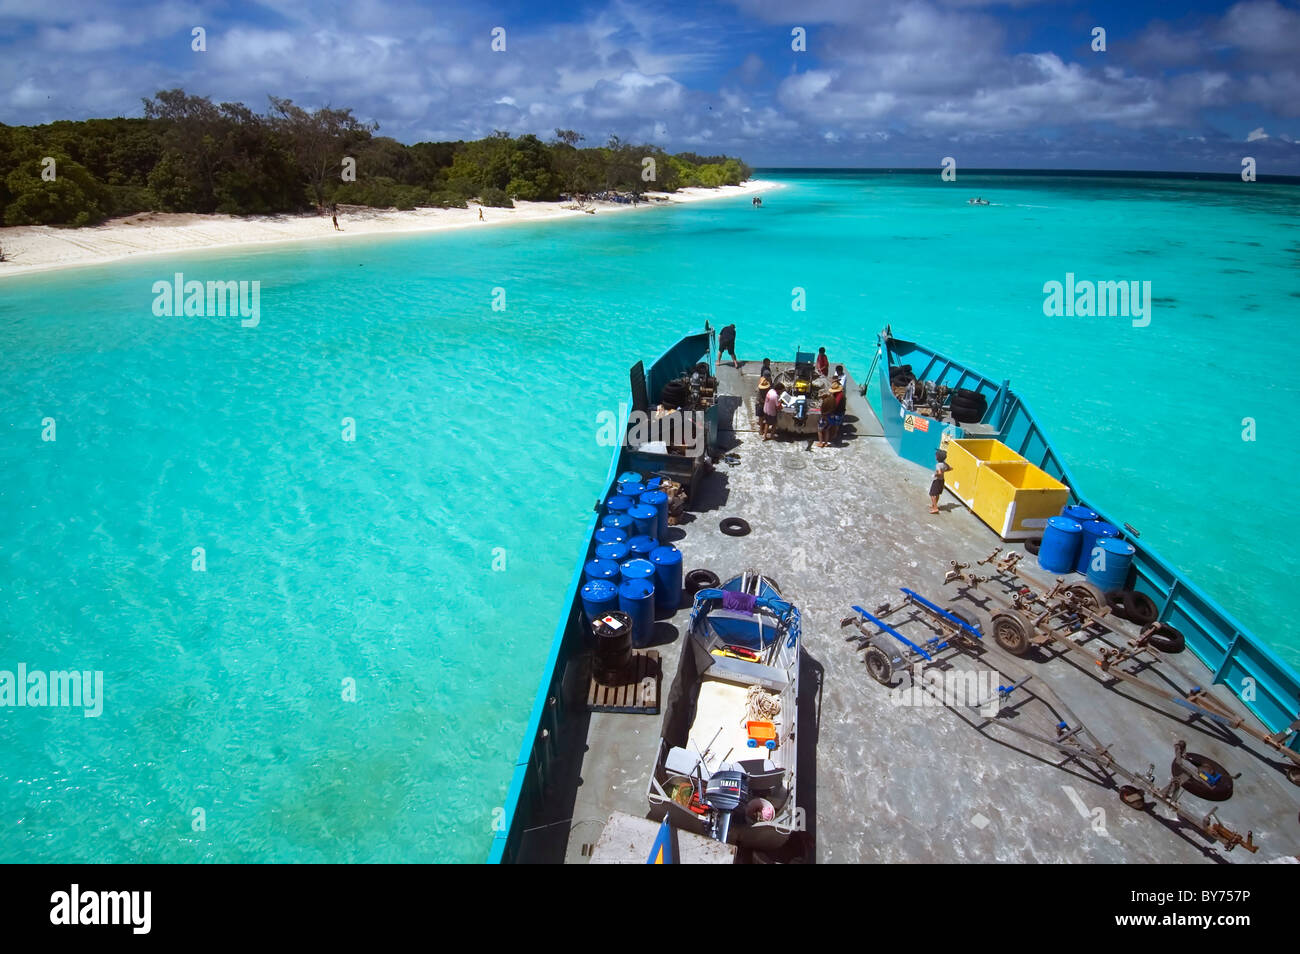 Loading boats onto barge at North West Island, Capricorn Bunker Group, southern Great Barrier Reef, Queensland, - Stock Image